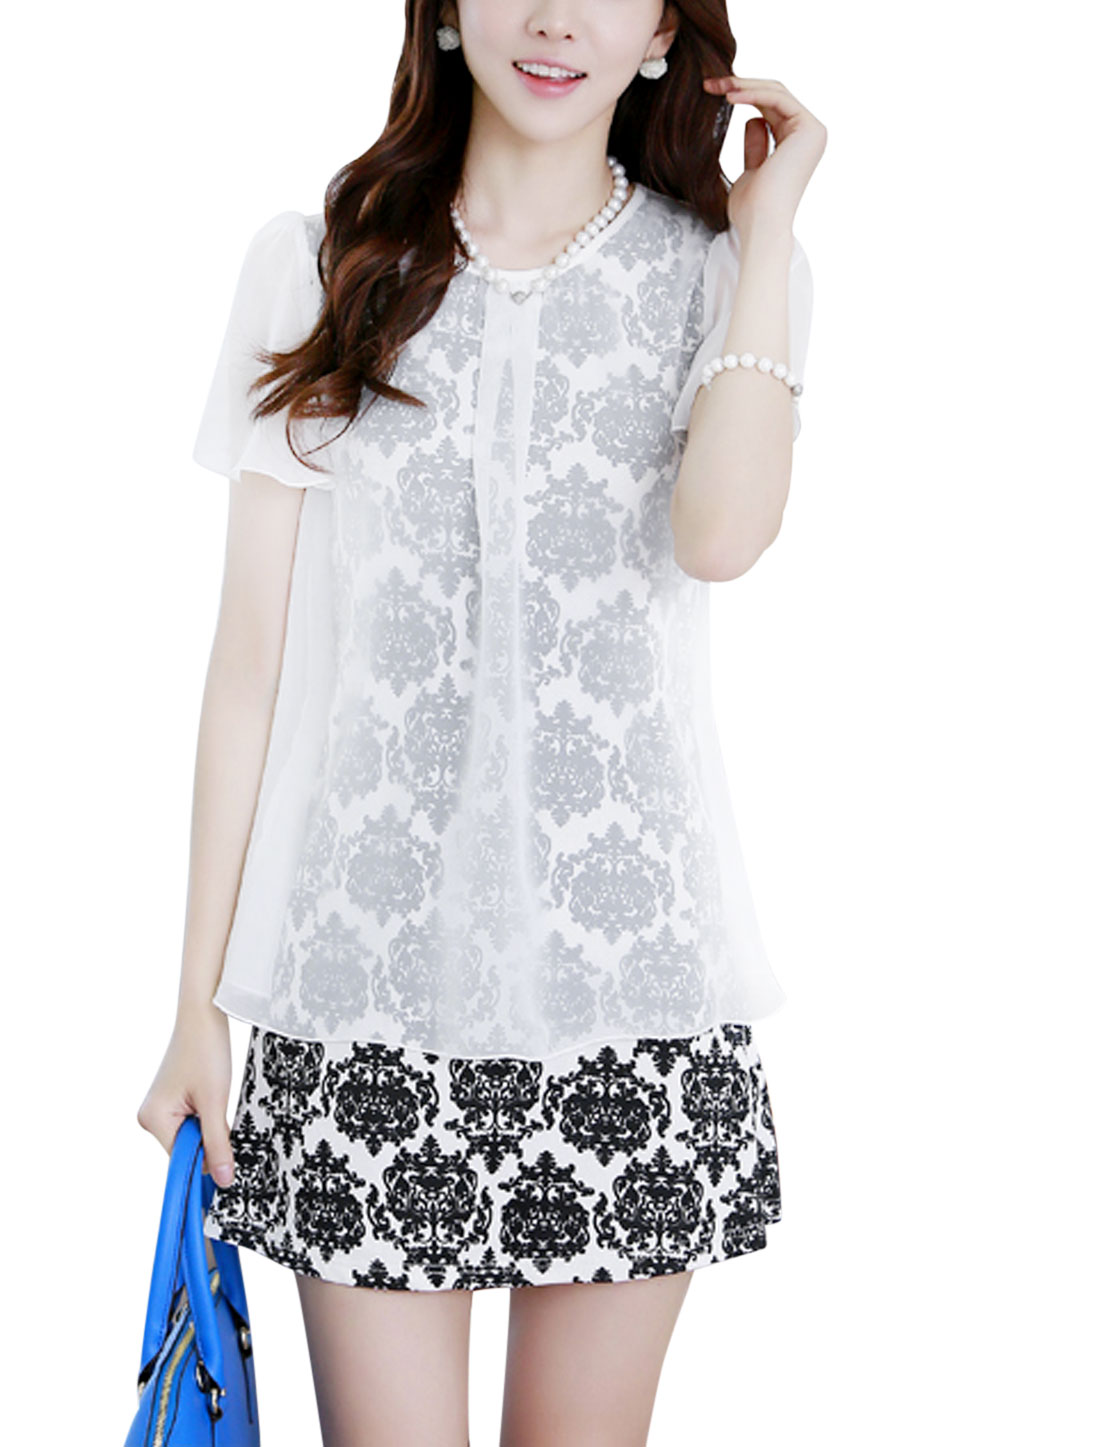 Lady Chiffon Overlay Porcelain Floral Prints Dress White M